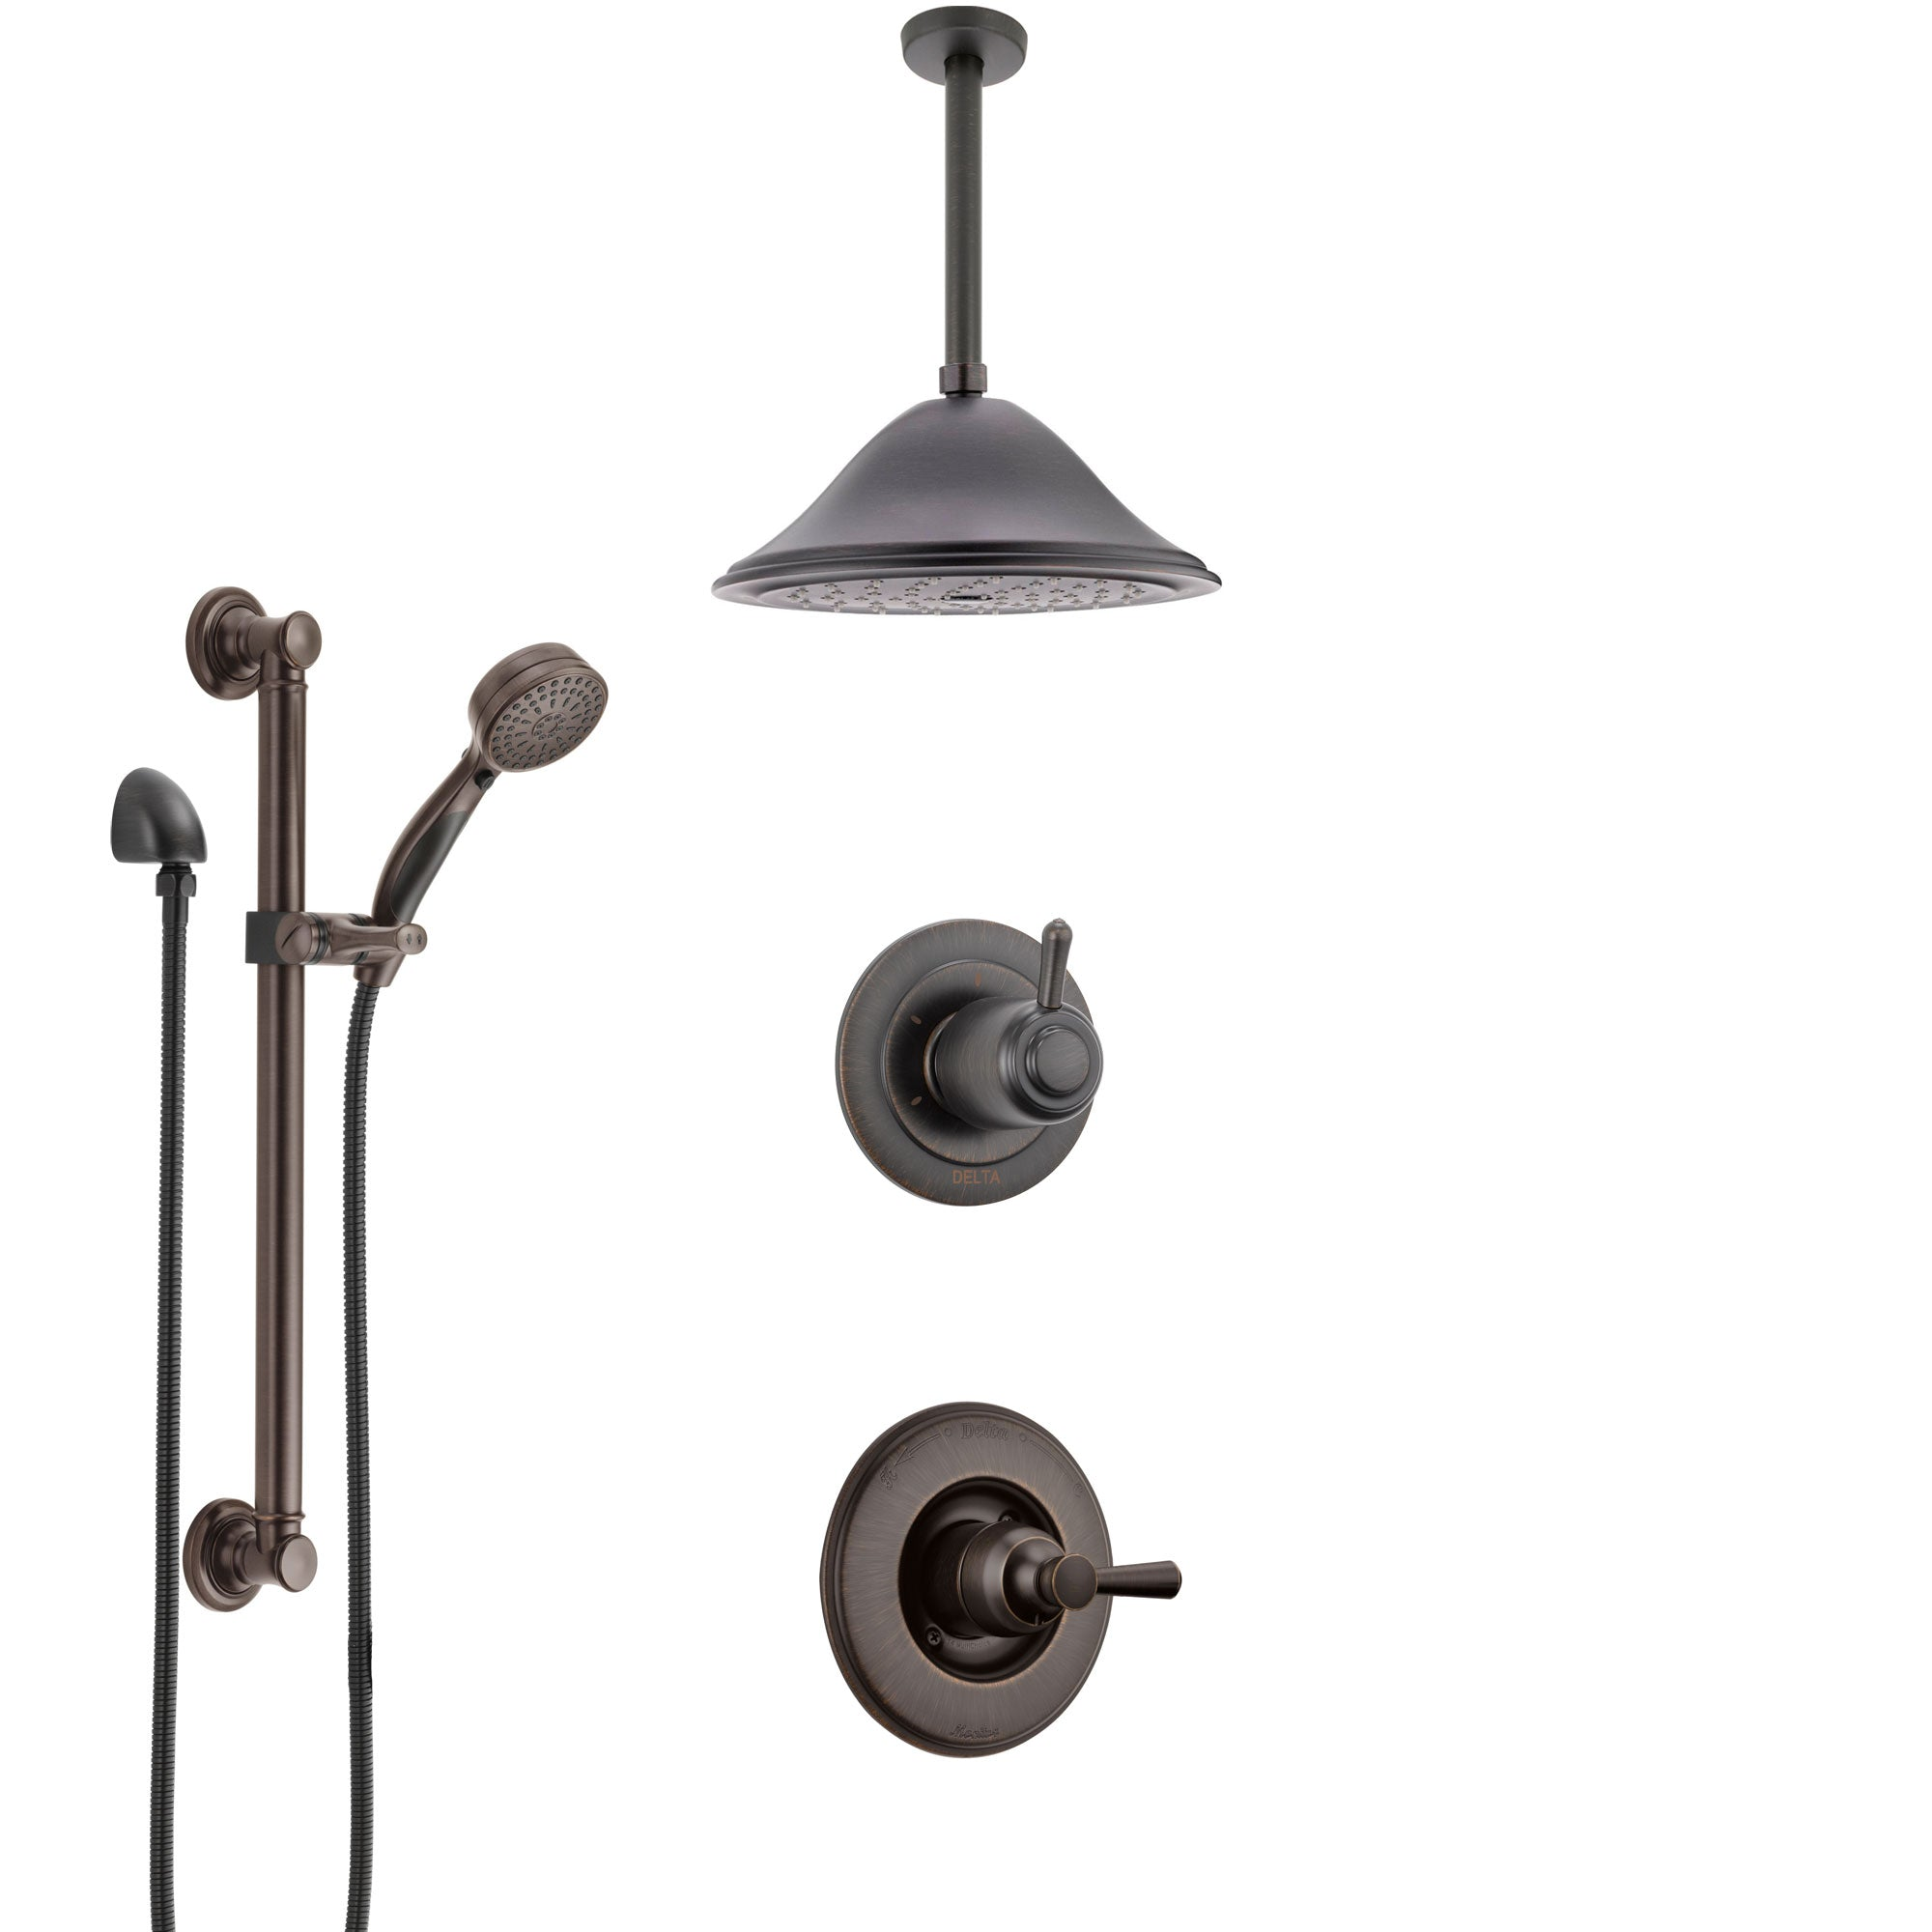 Delta Linden Venetian Bronze Shower System with Control Handle, 3-Setting Diverter, Ceiling Mount Showerhead, and Hand Shower with Grab Bar SS1493RB8